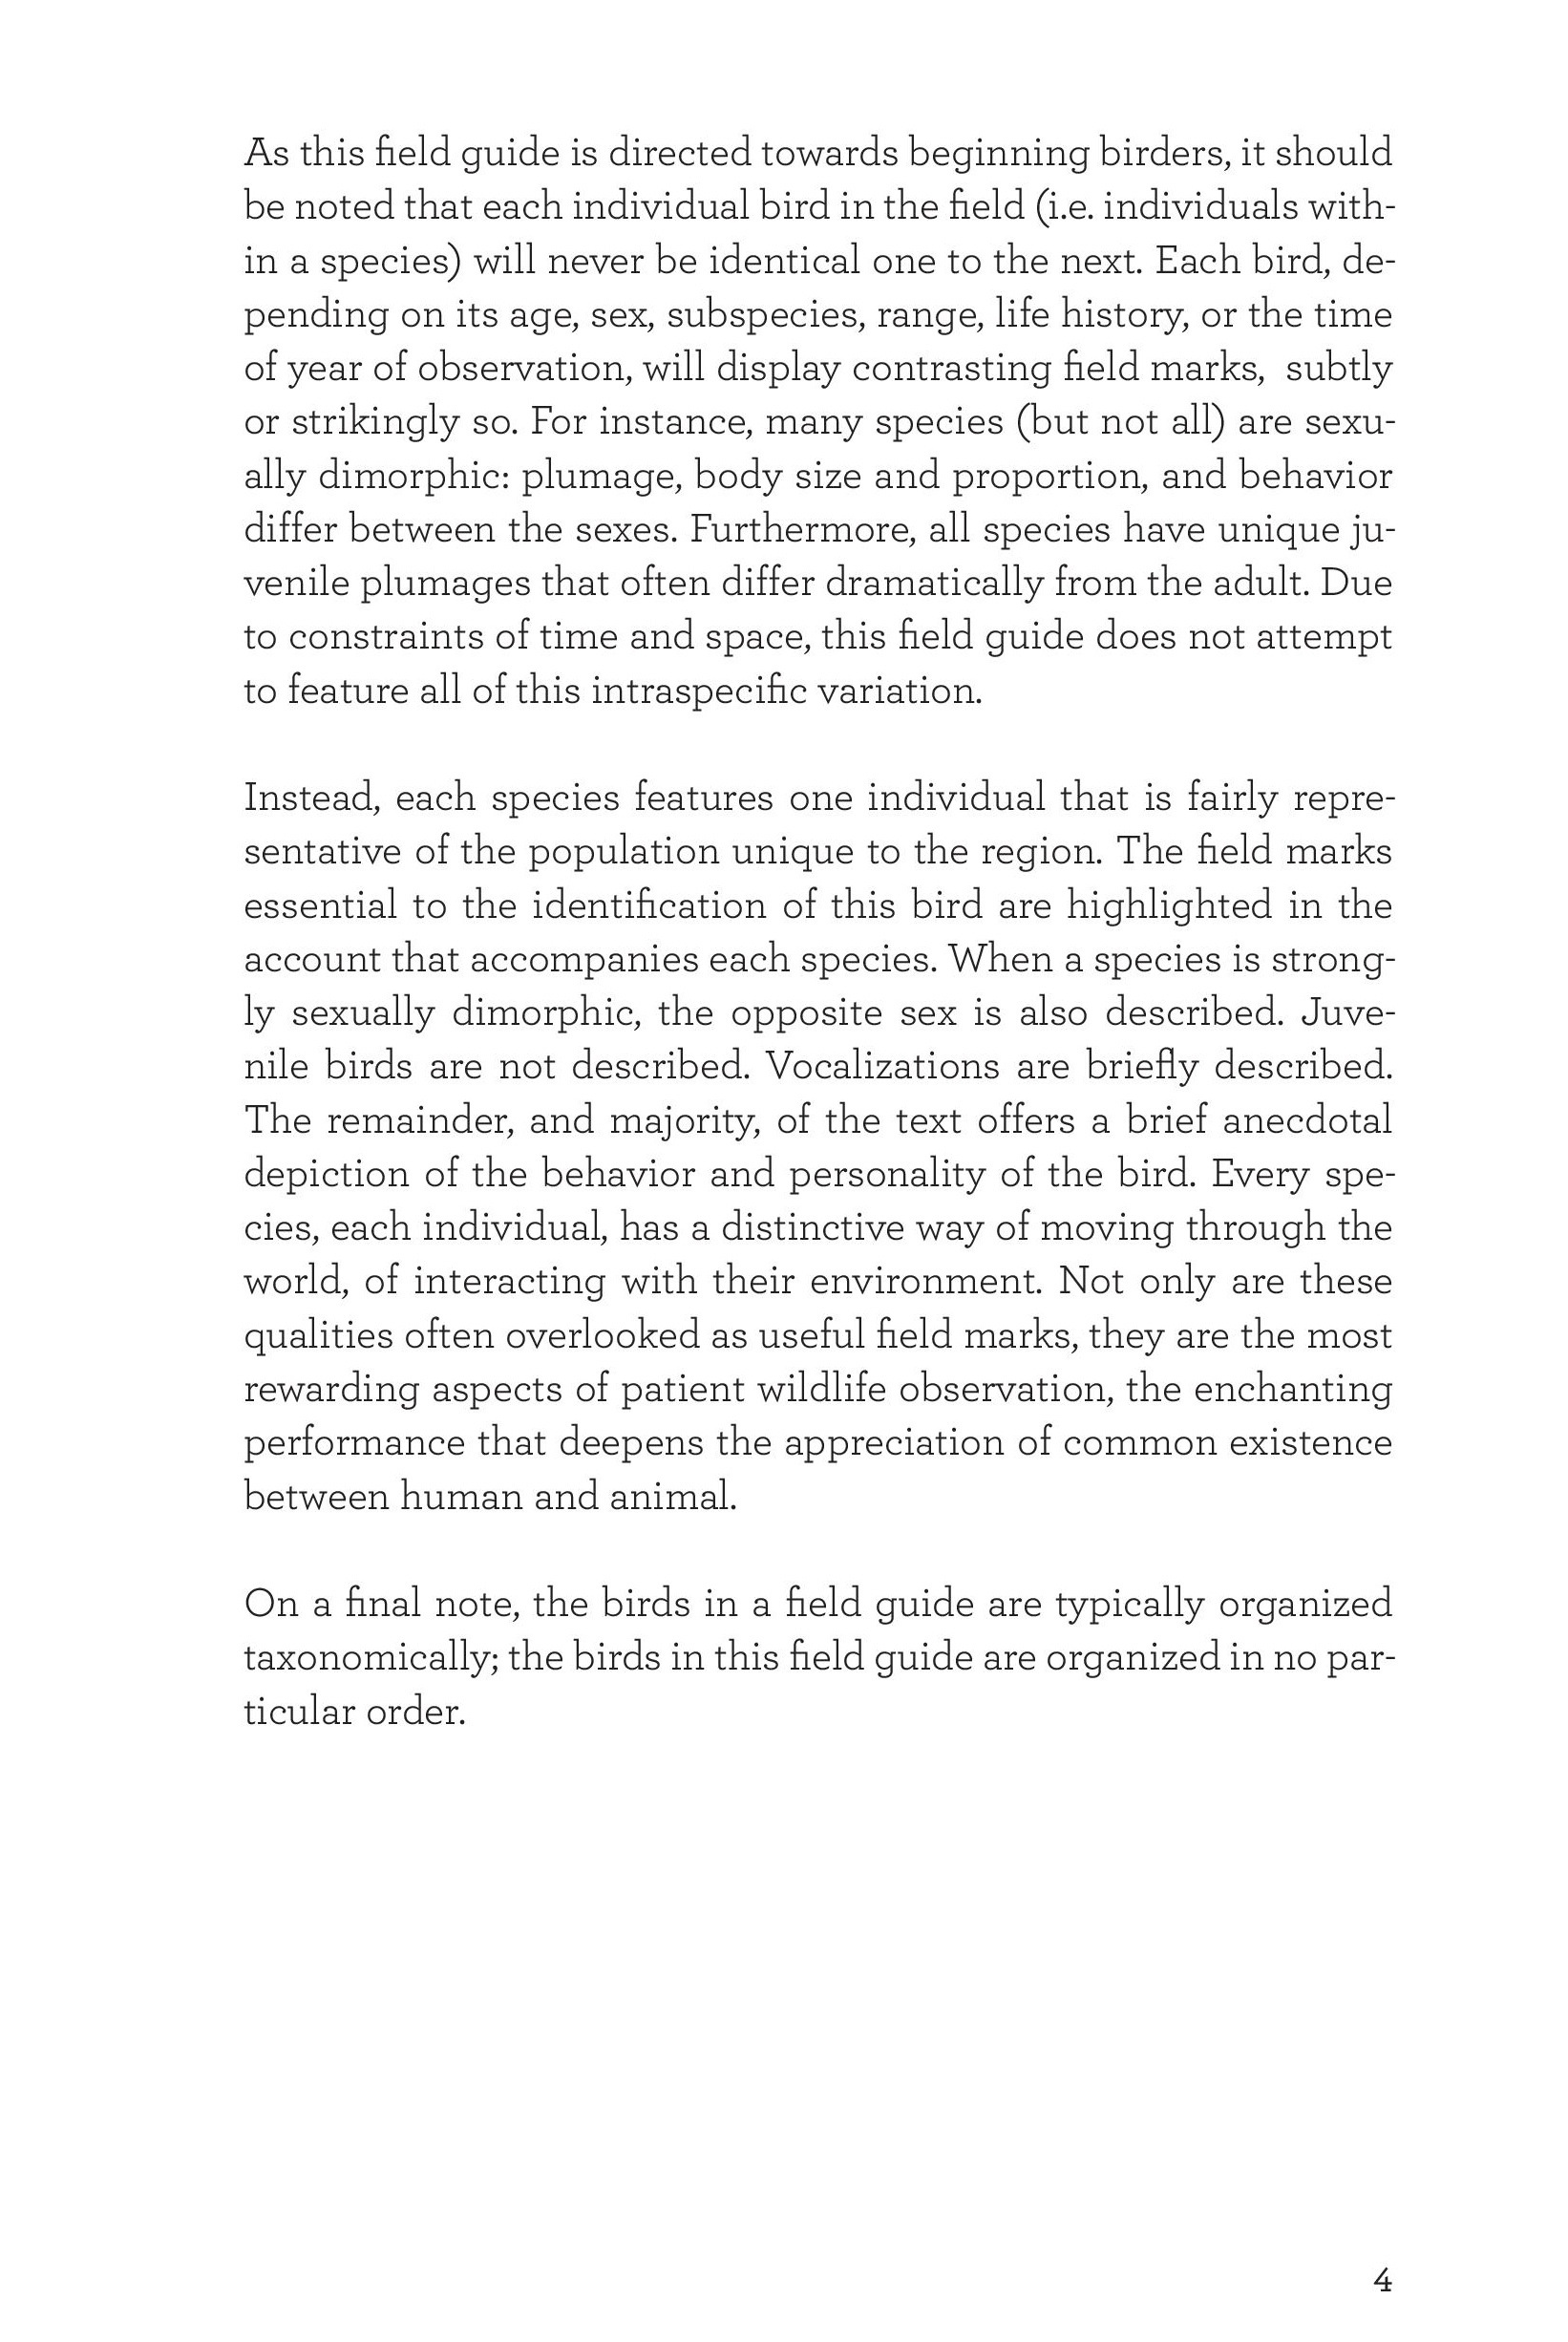 James_FieldGuide_Text screen lores (3)-page-007.jpg